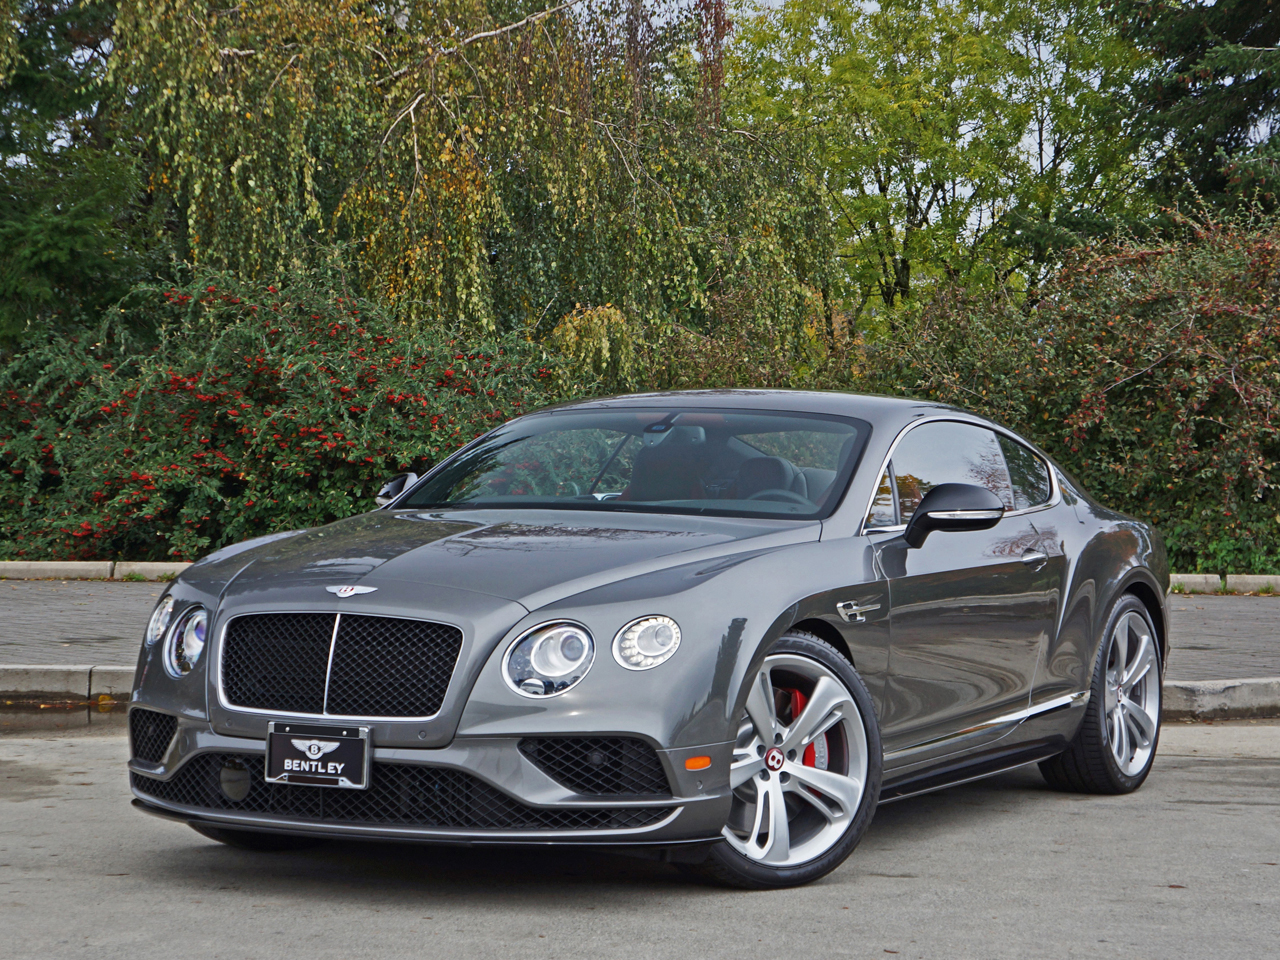 2016 Bentley Continental Gt V8 S Road Test Review